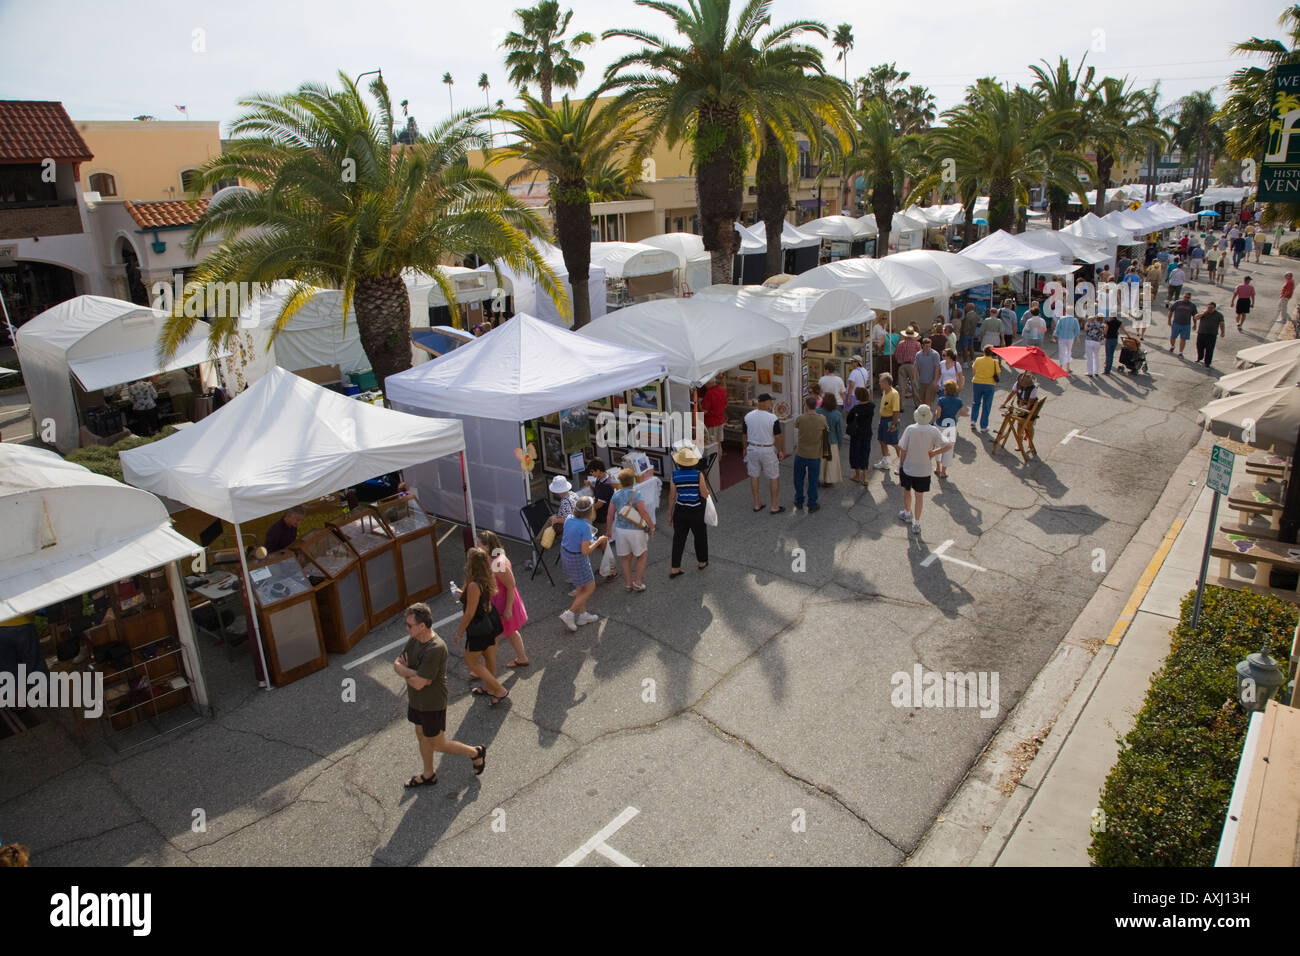 Annual Art Craft show in downtown Venice Florida - Stock Image